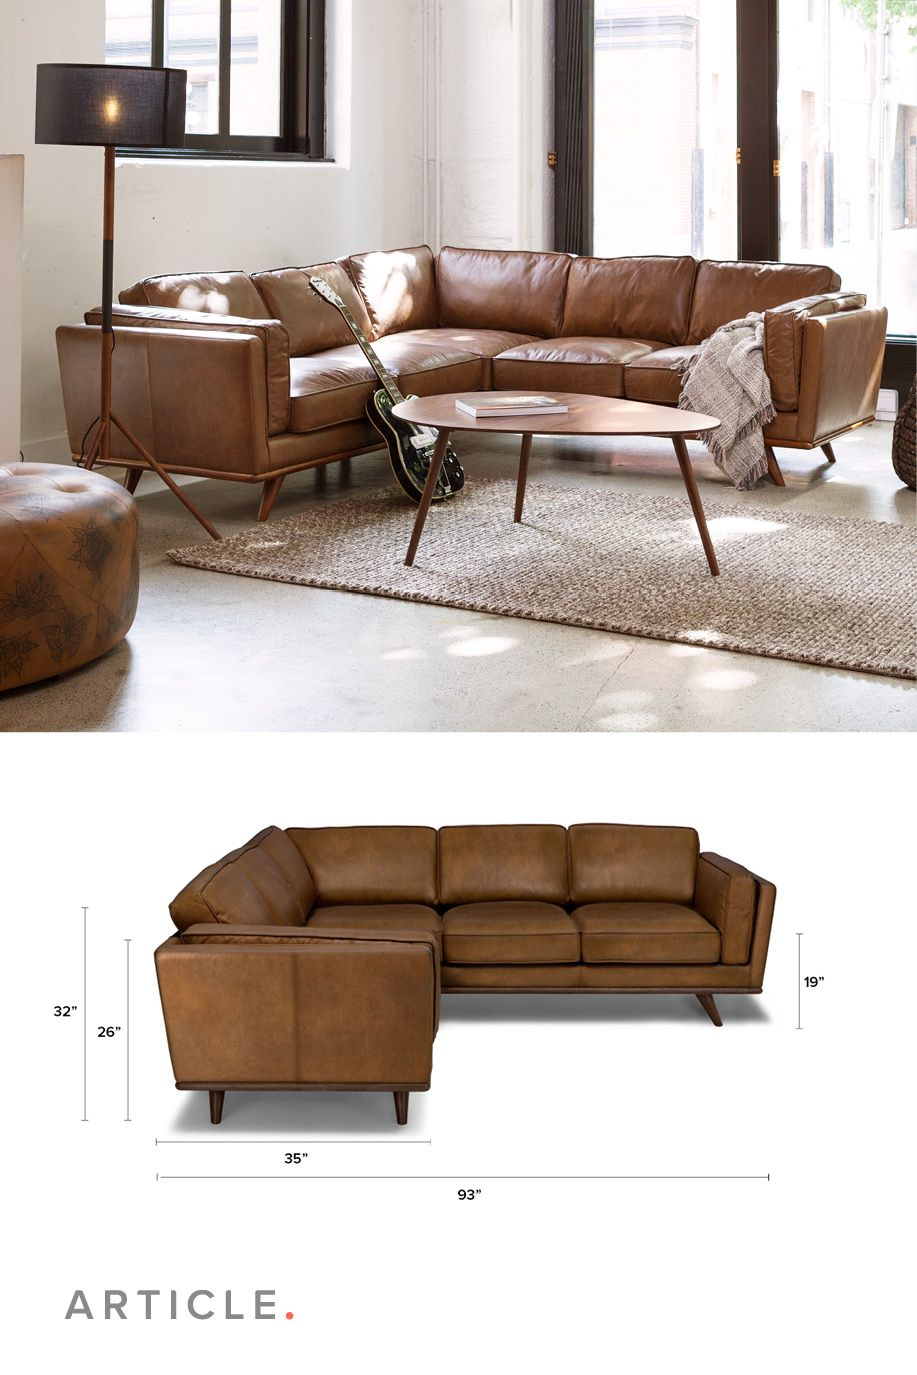 Enough Lounge Space For The Whole Family